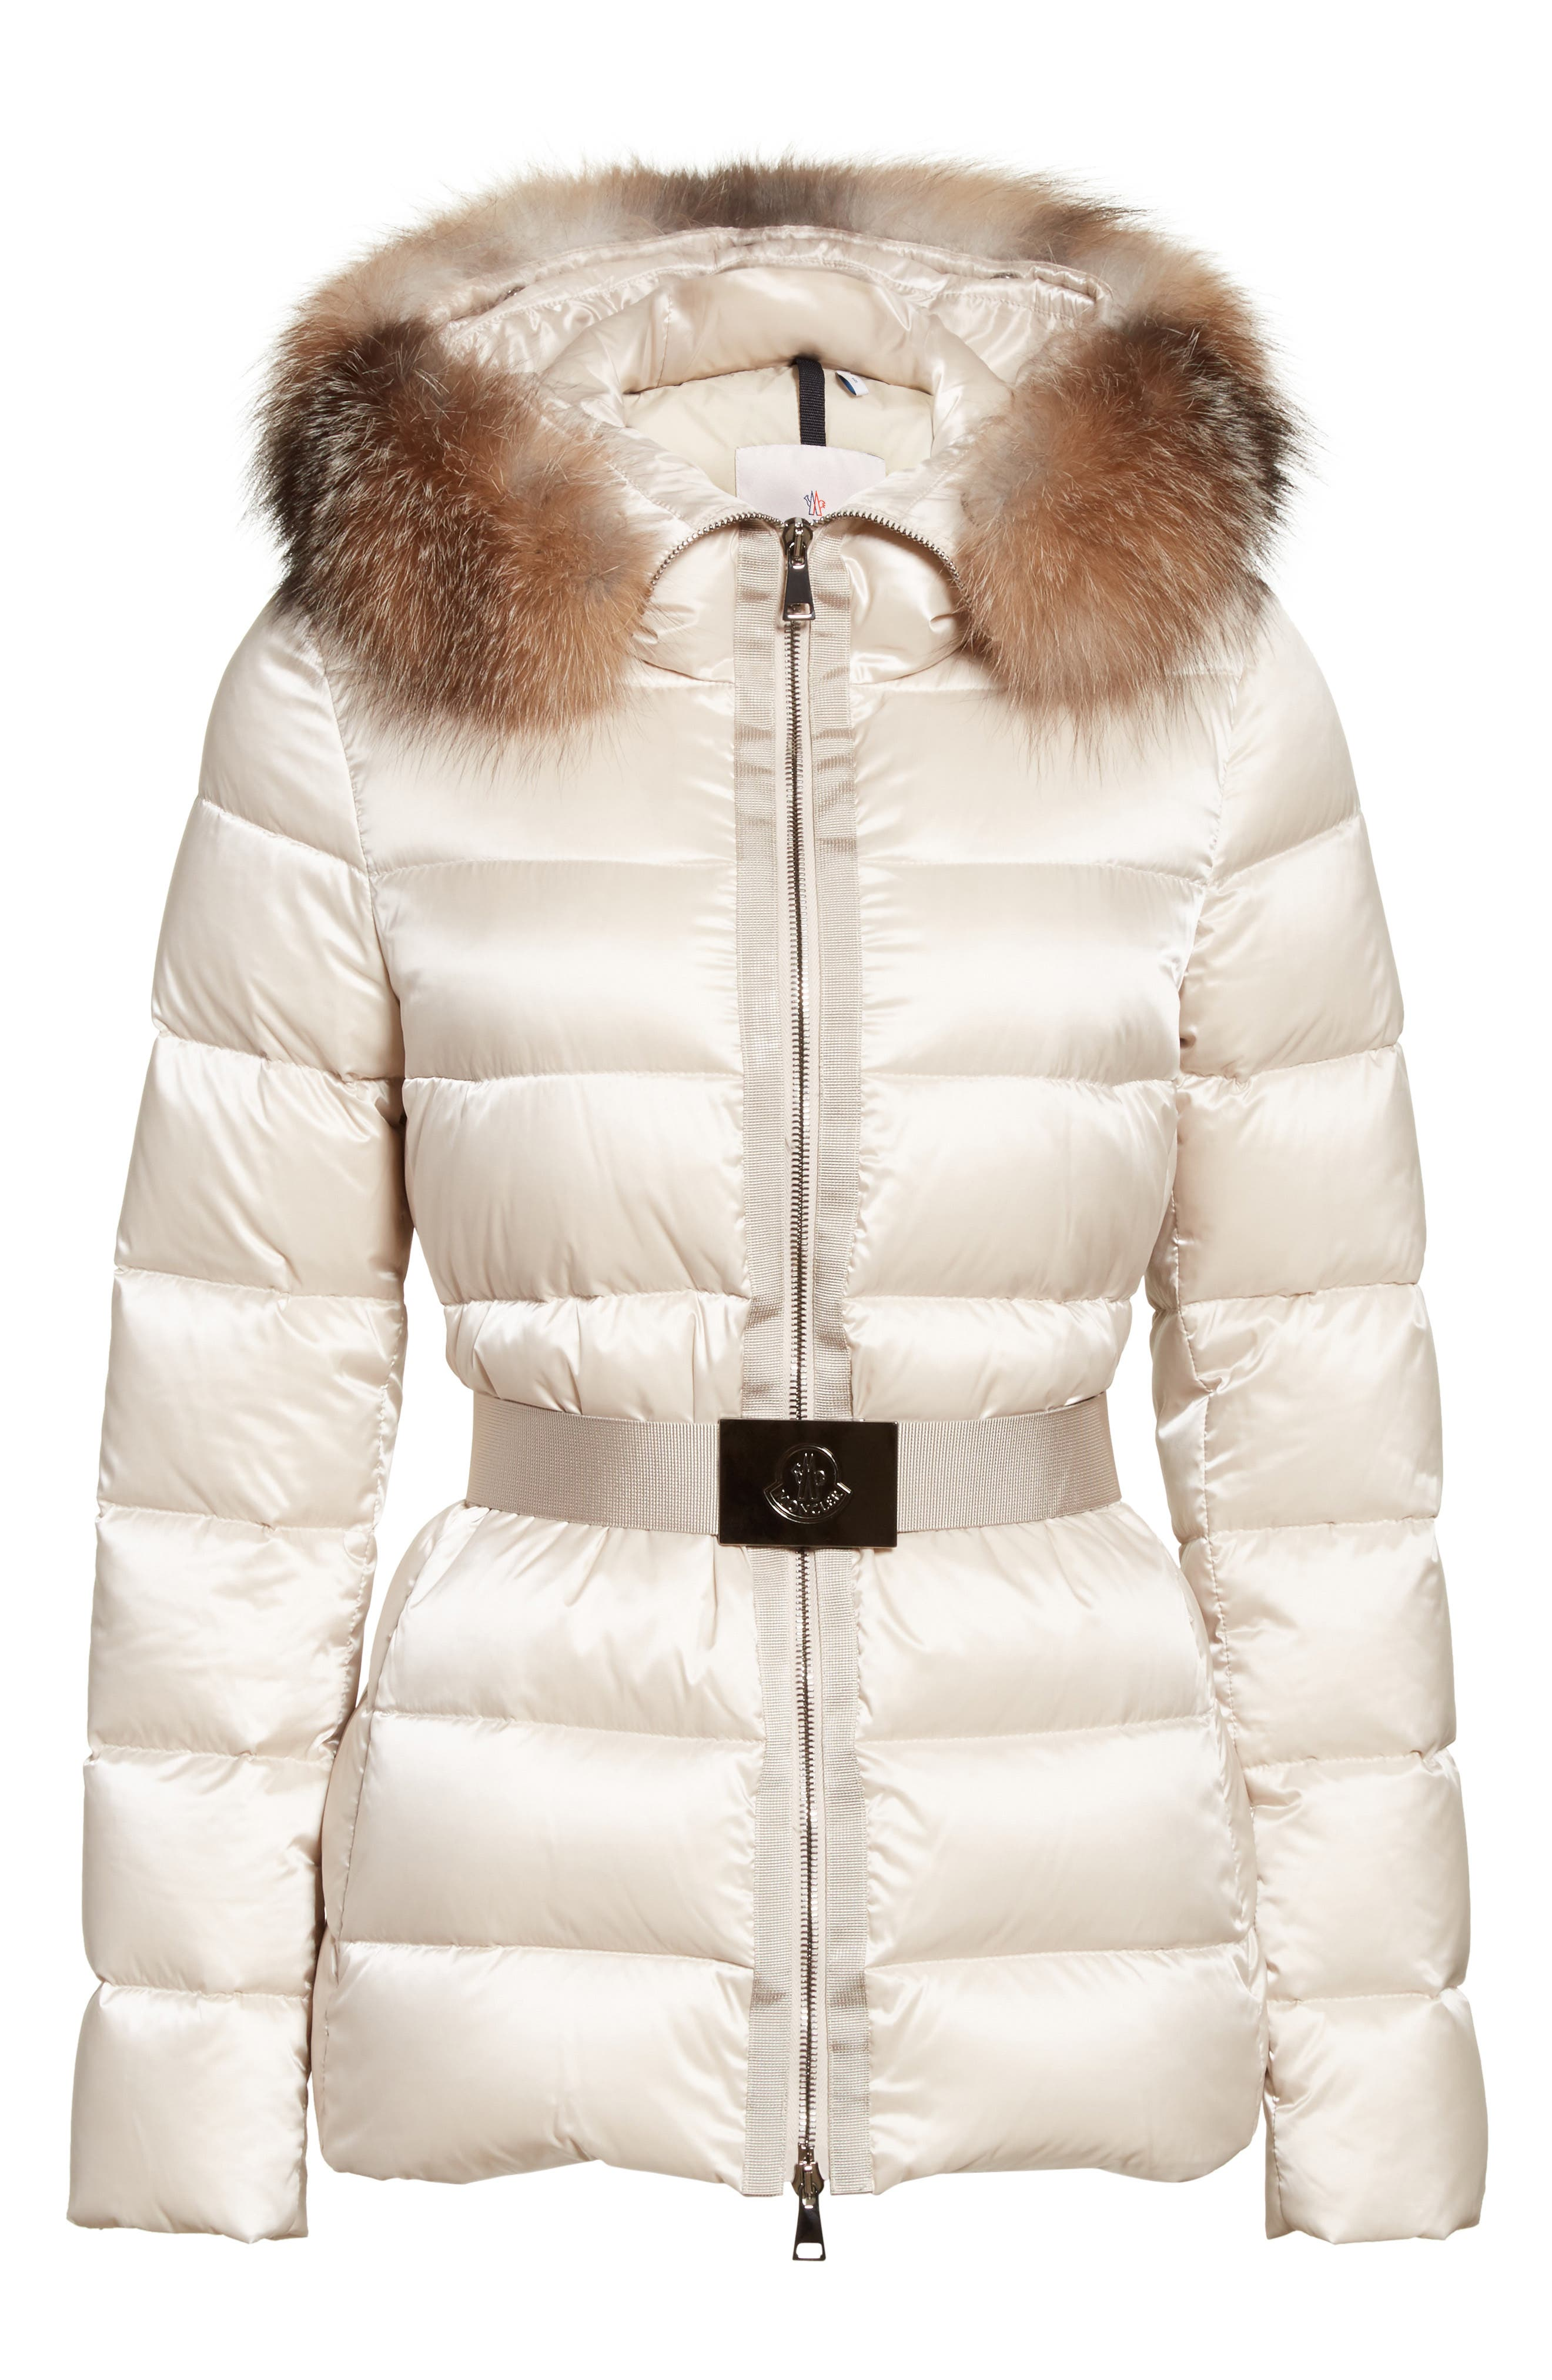 Tatie Belted Down Puffer Coat with Removable Genuine Fox Fur Trim,                             Alternate thumbnail 5, color,                             CHAMPAGNE